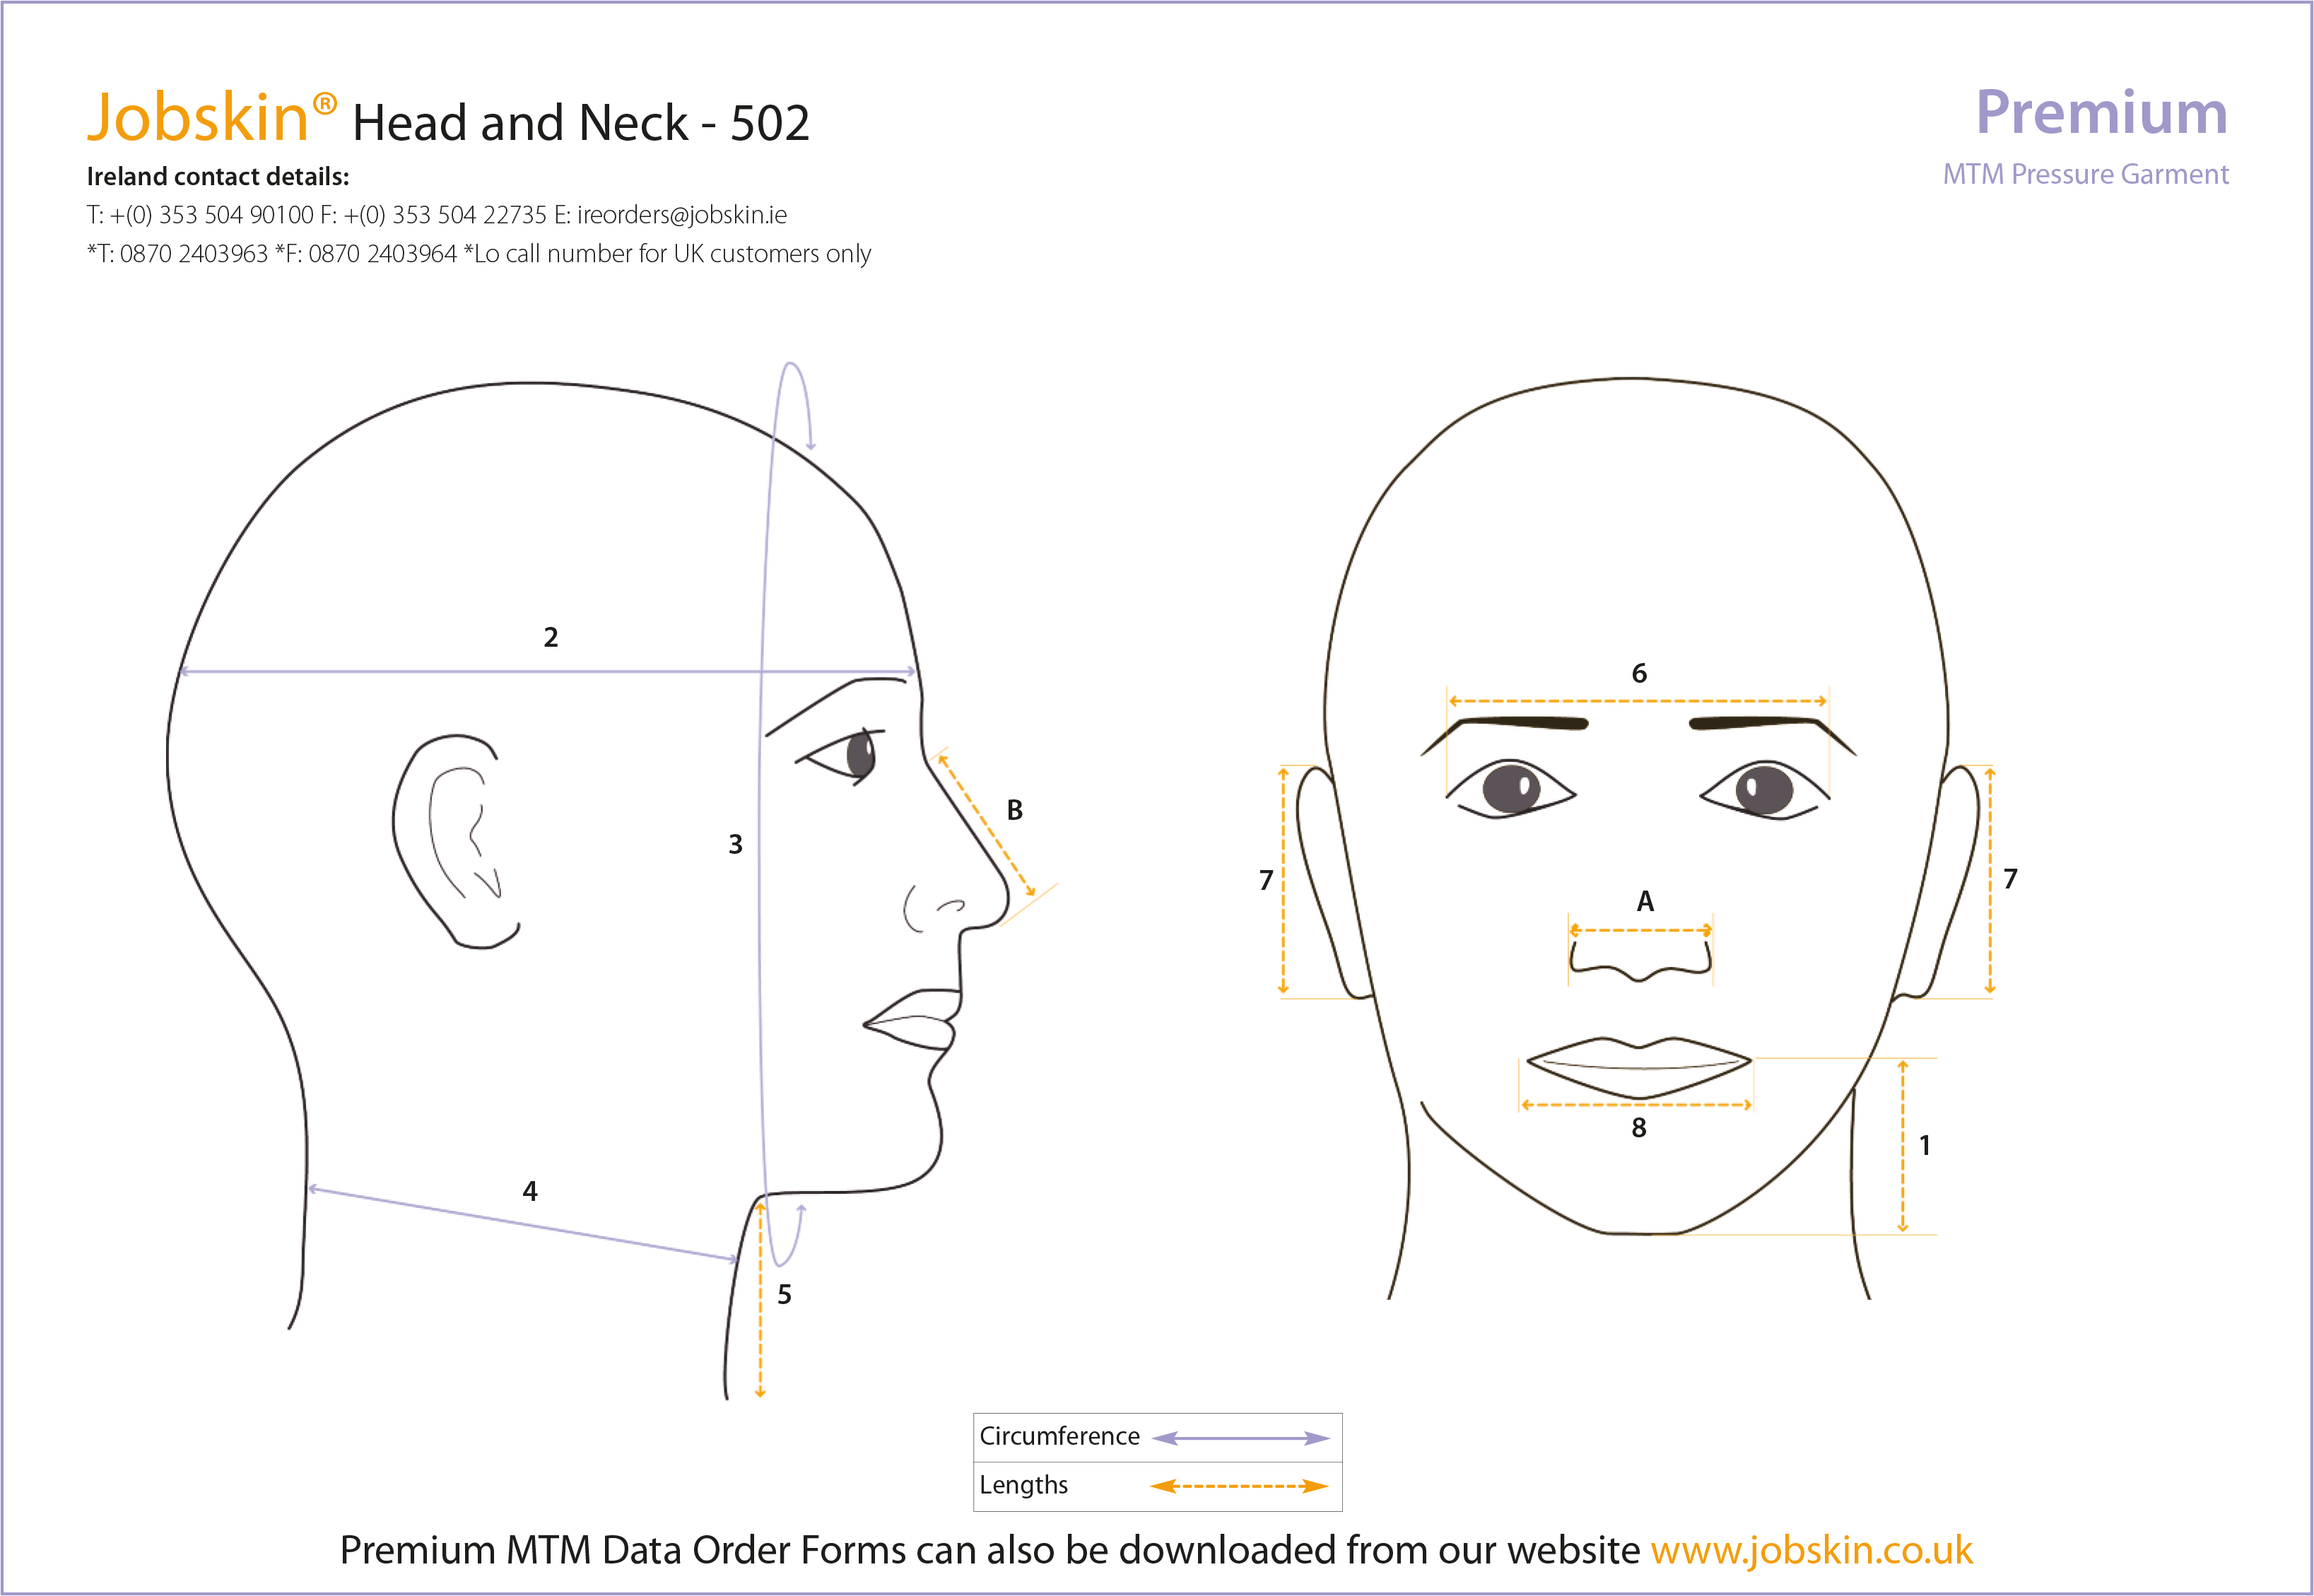 Head and neck measure form